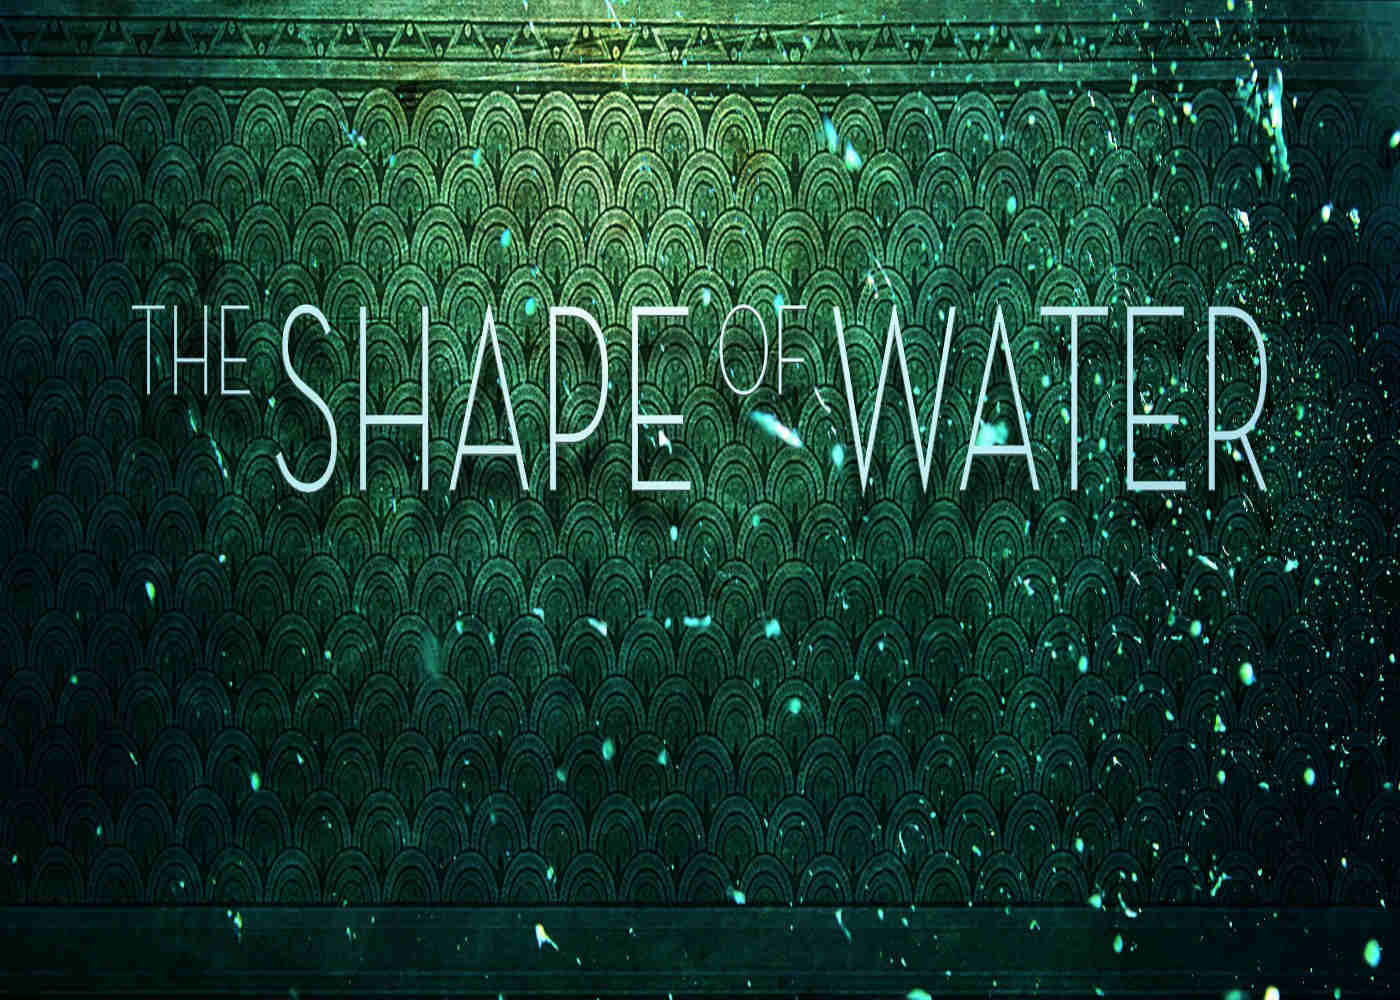 Guillermo del Toro's New Film The Shape of Water Gets Trailer